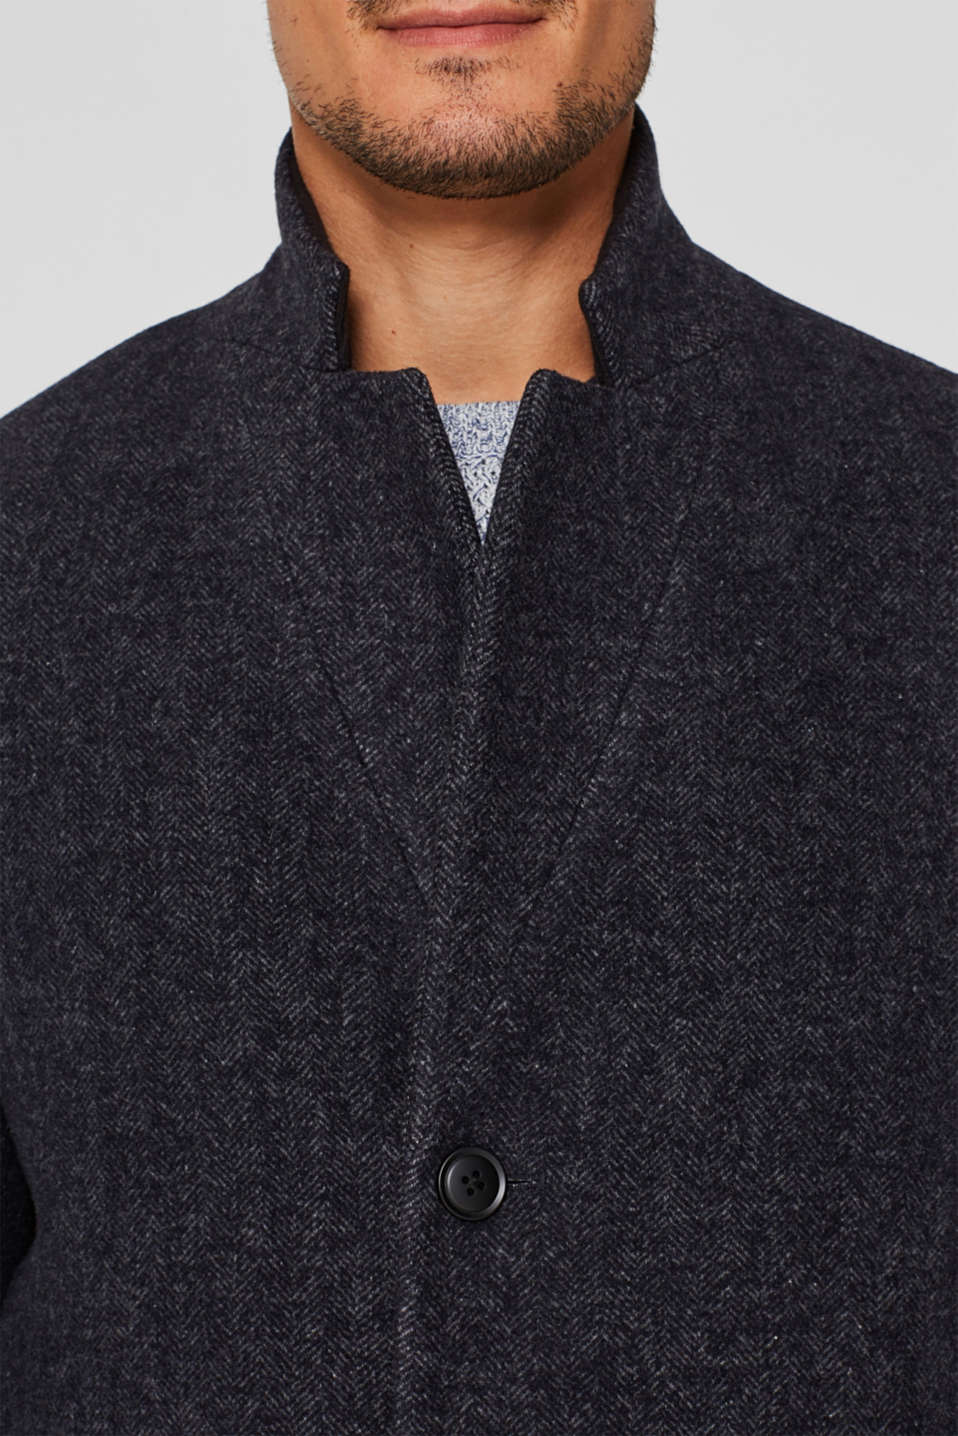 Wool blend: Coat with a herringbone pattern, ANTHRACITE, detail image number 2